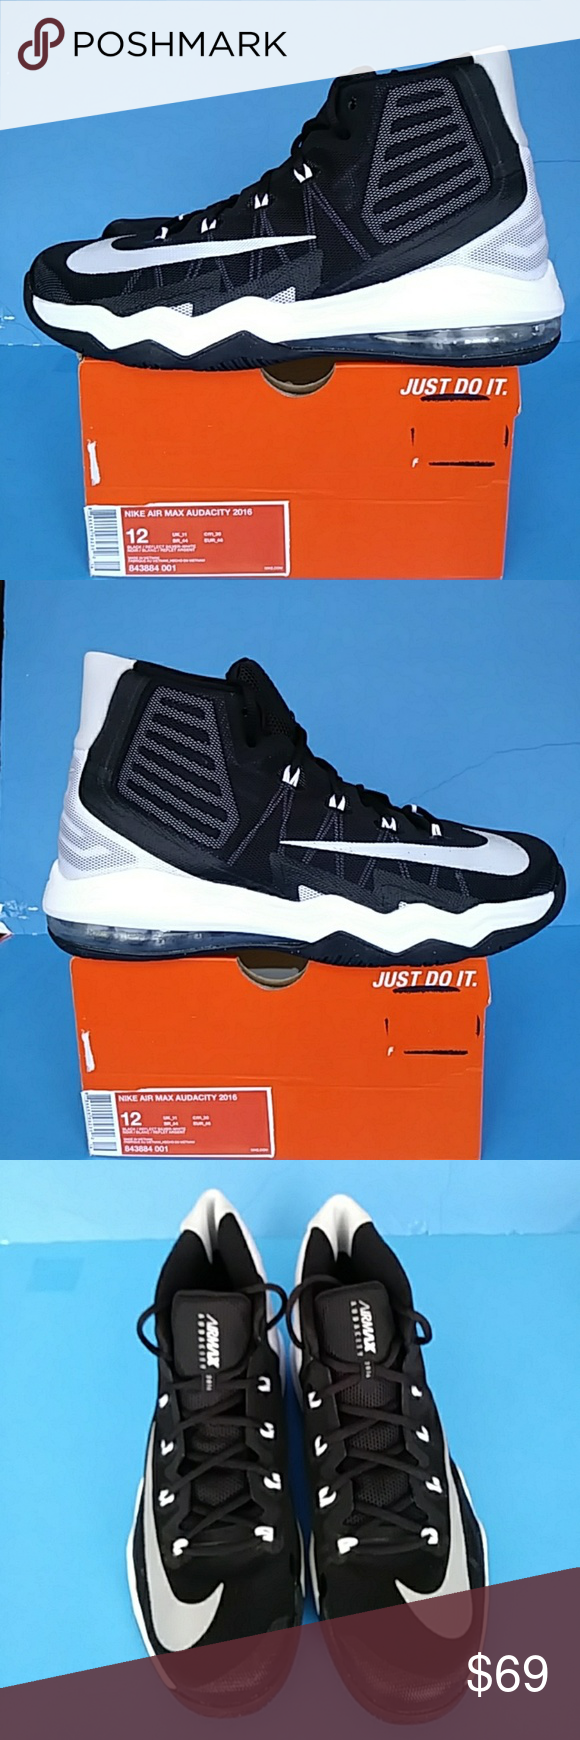 08d5a376a47f3 BRAND NEW NIKE AIR MAX AUDACITY 2016 100% AUTHENTIC NIKE AIR MAX AUDACITY  2016 BAR